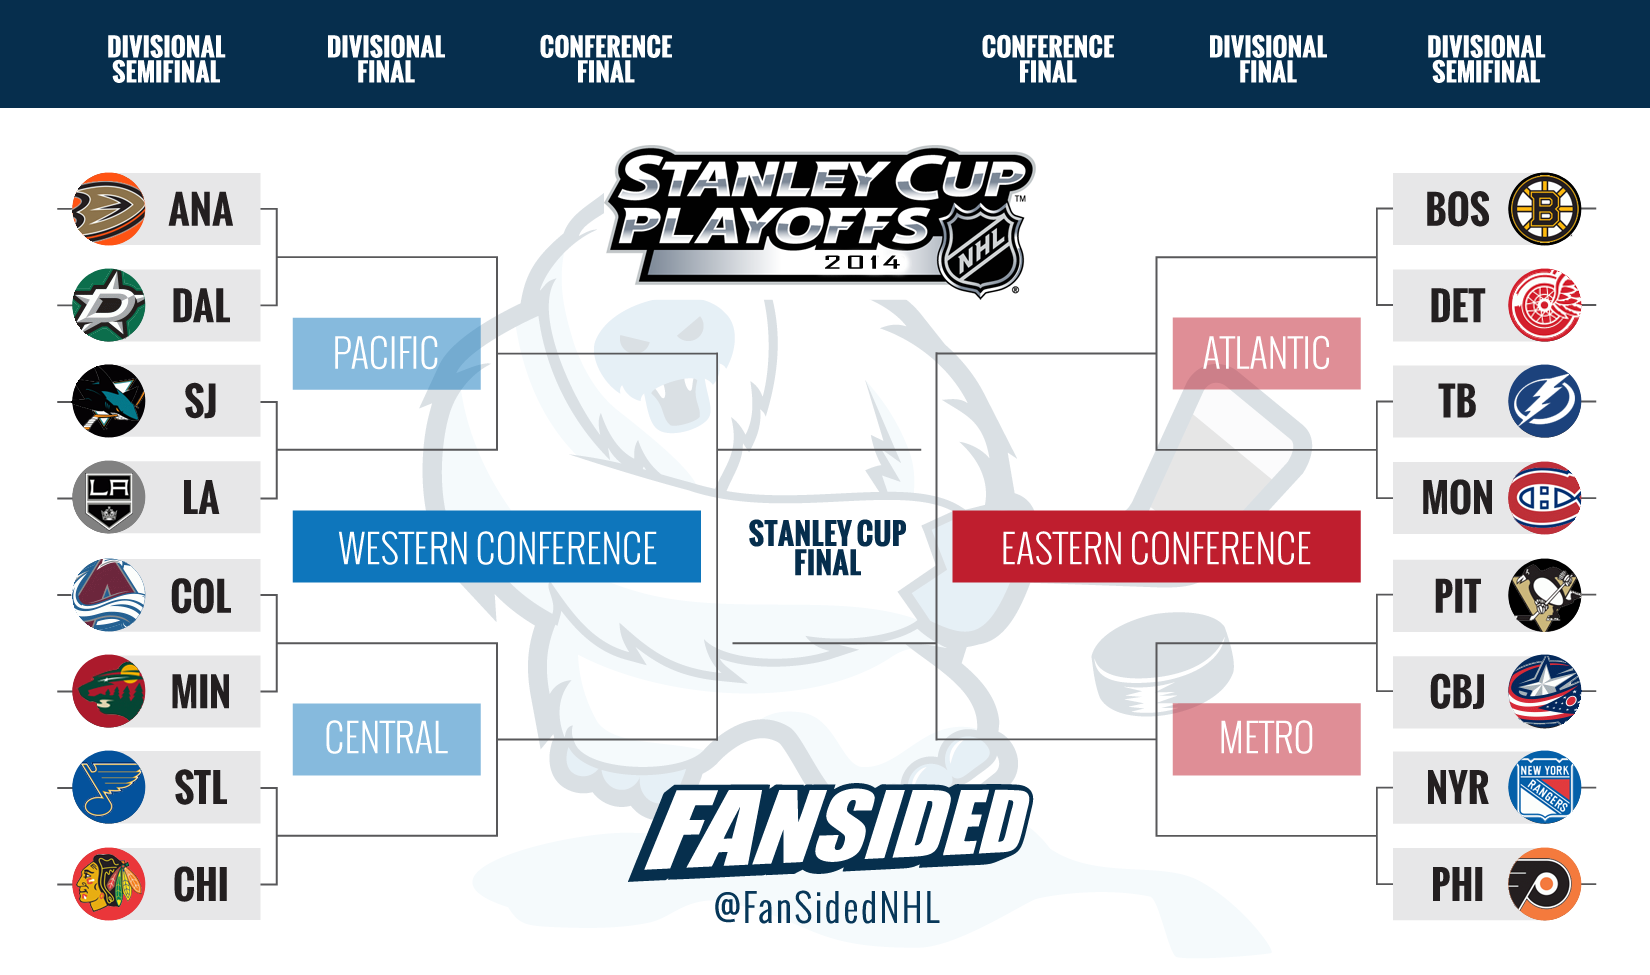 2014 Nfl Playoff Bracket The 2014 stanley cup playoffs